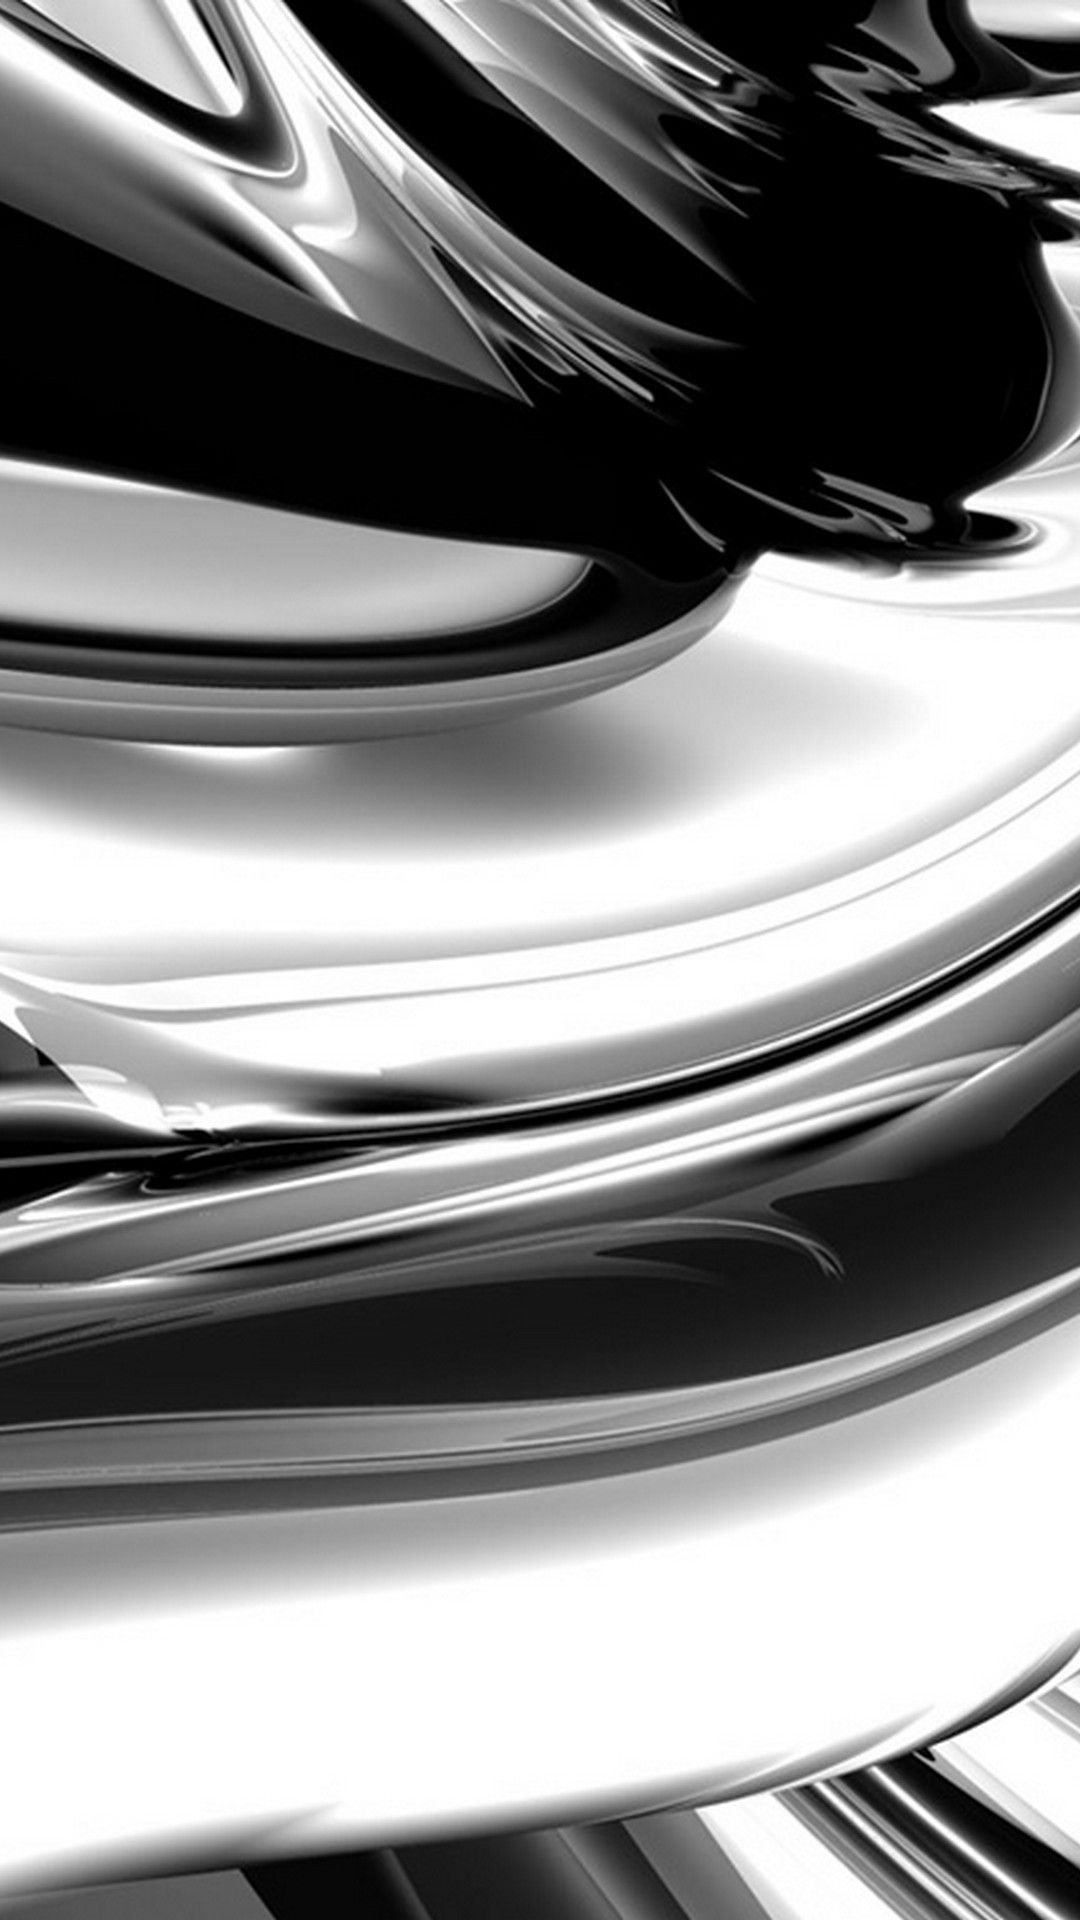 Silver Backgrounds For Android Best Android Wallpapers Silver Background Backgrounds For Android Android Wallpaper